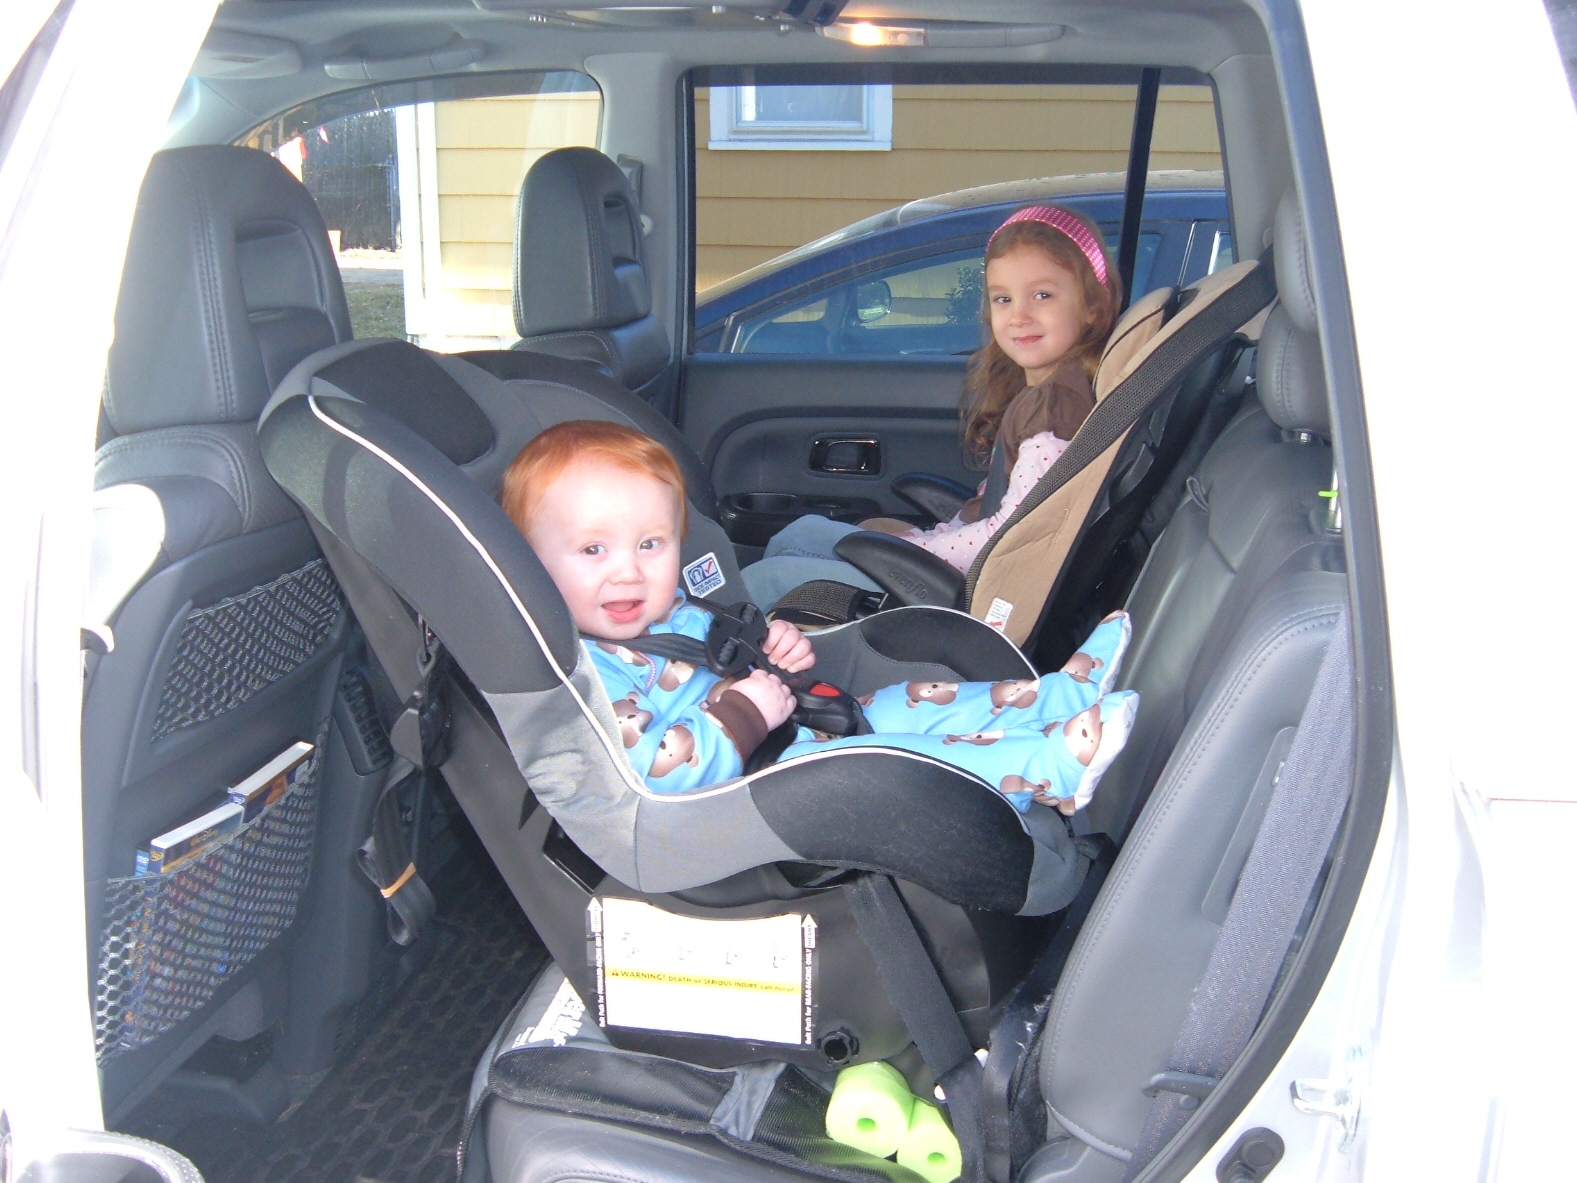 Rear Facing Car Seat Age 4 Pa Children Must Now Be Rear Facing In Cars Until Age 2